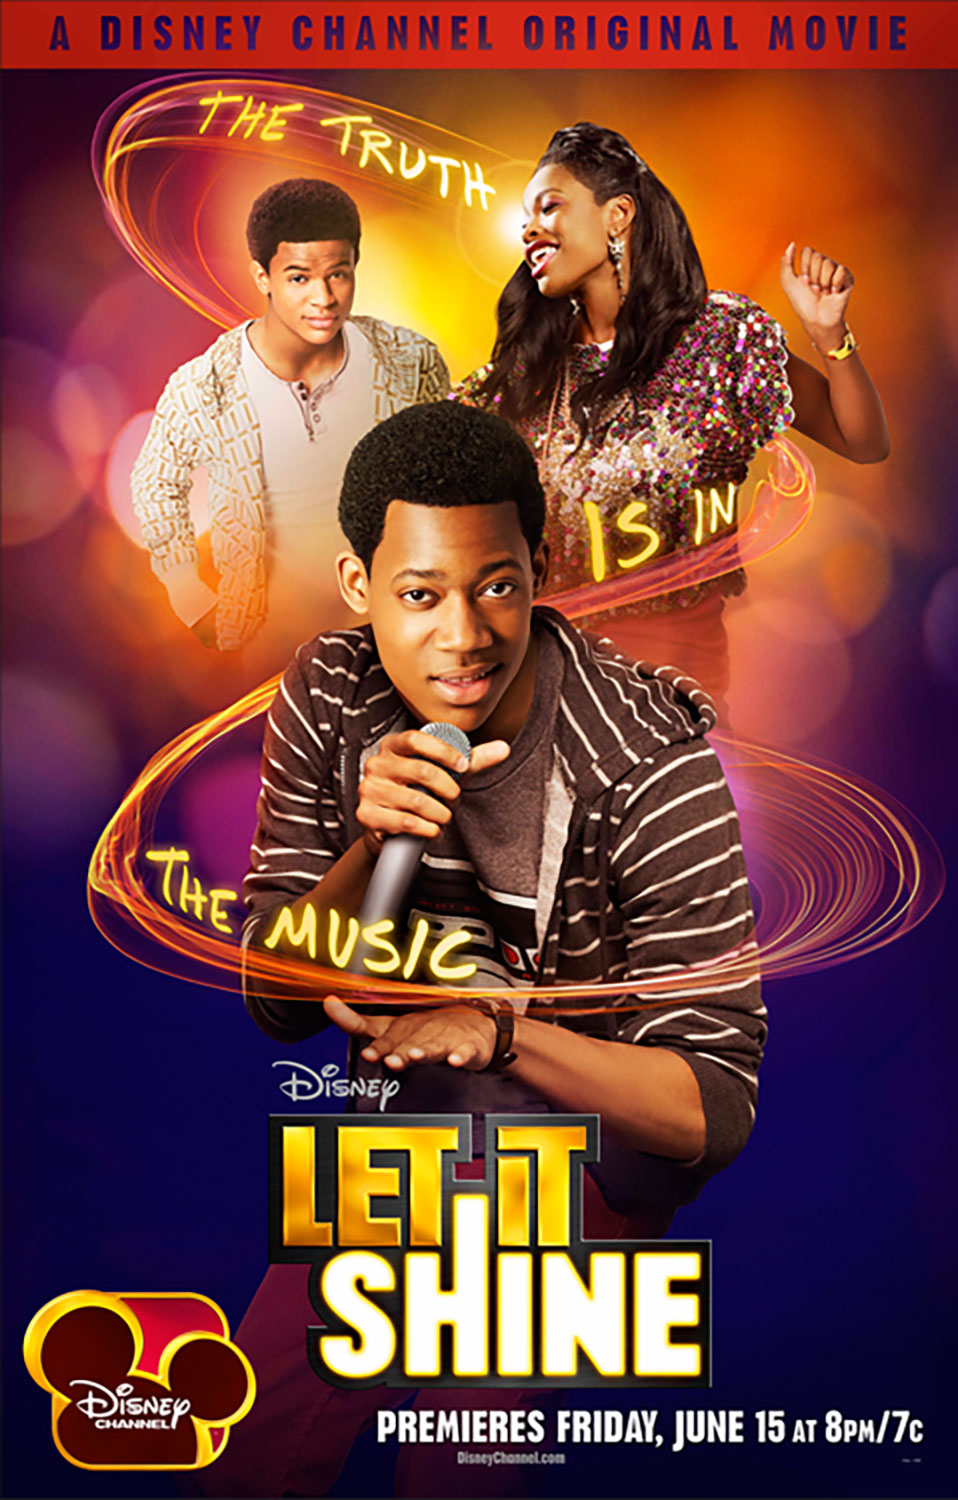 Affiche Poster let it shine disney channel